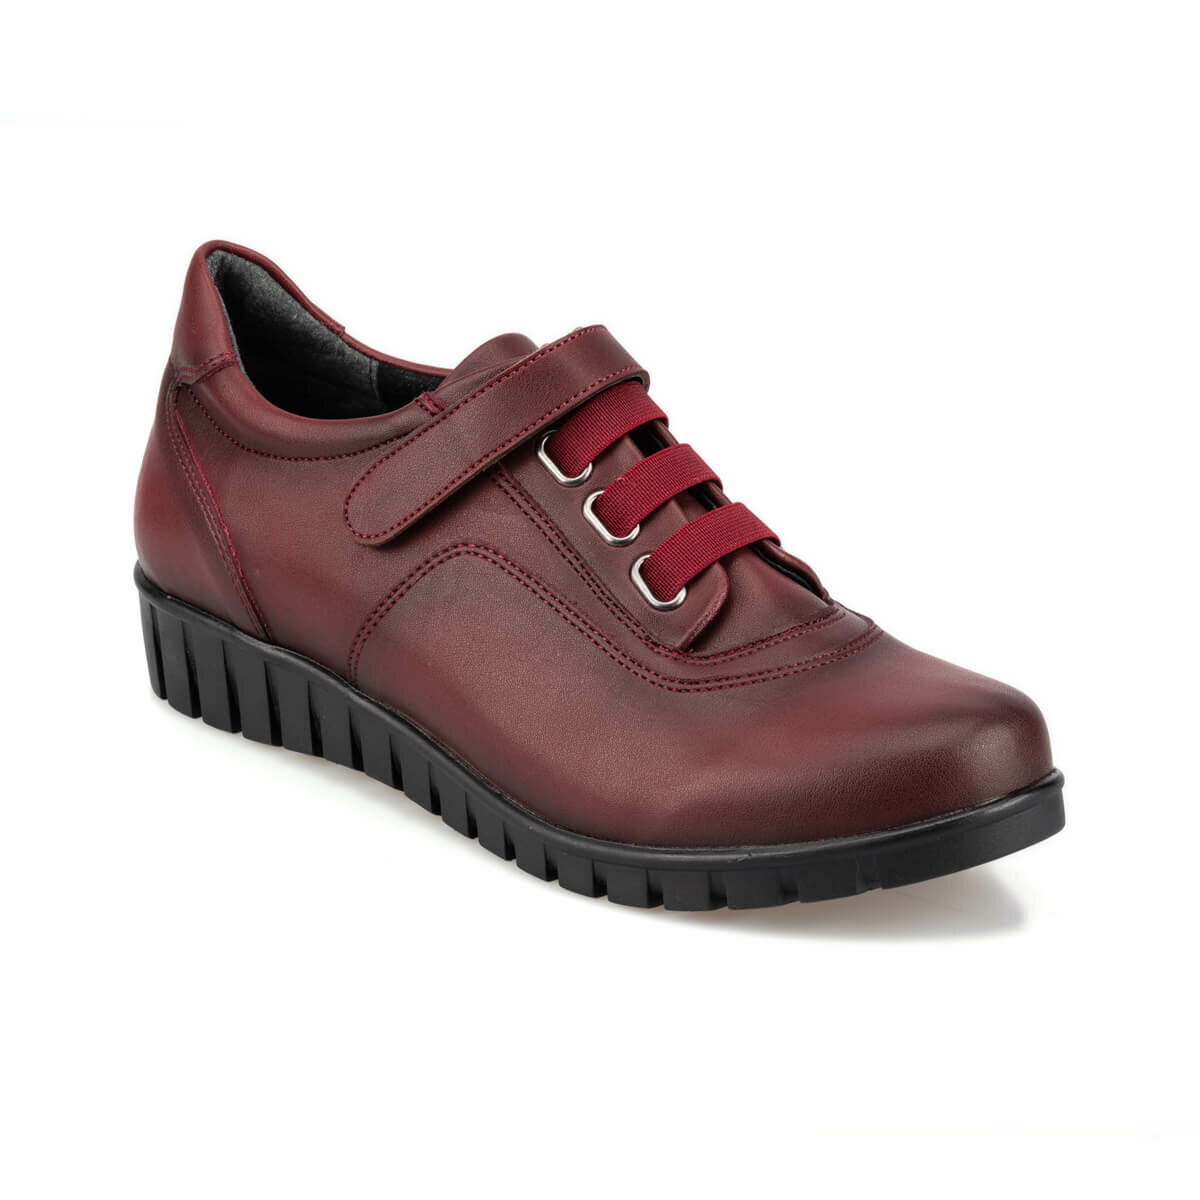 FLO 92. 151050.Z Burgundy Women 'S Sneaker Shoes Polaris